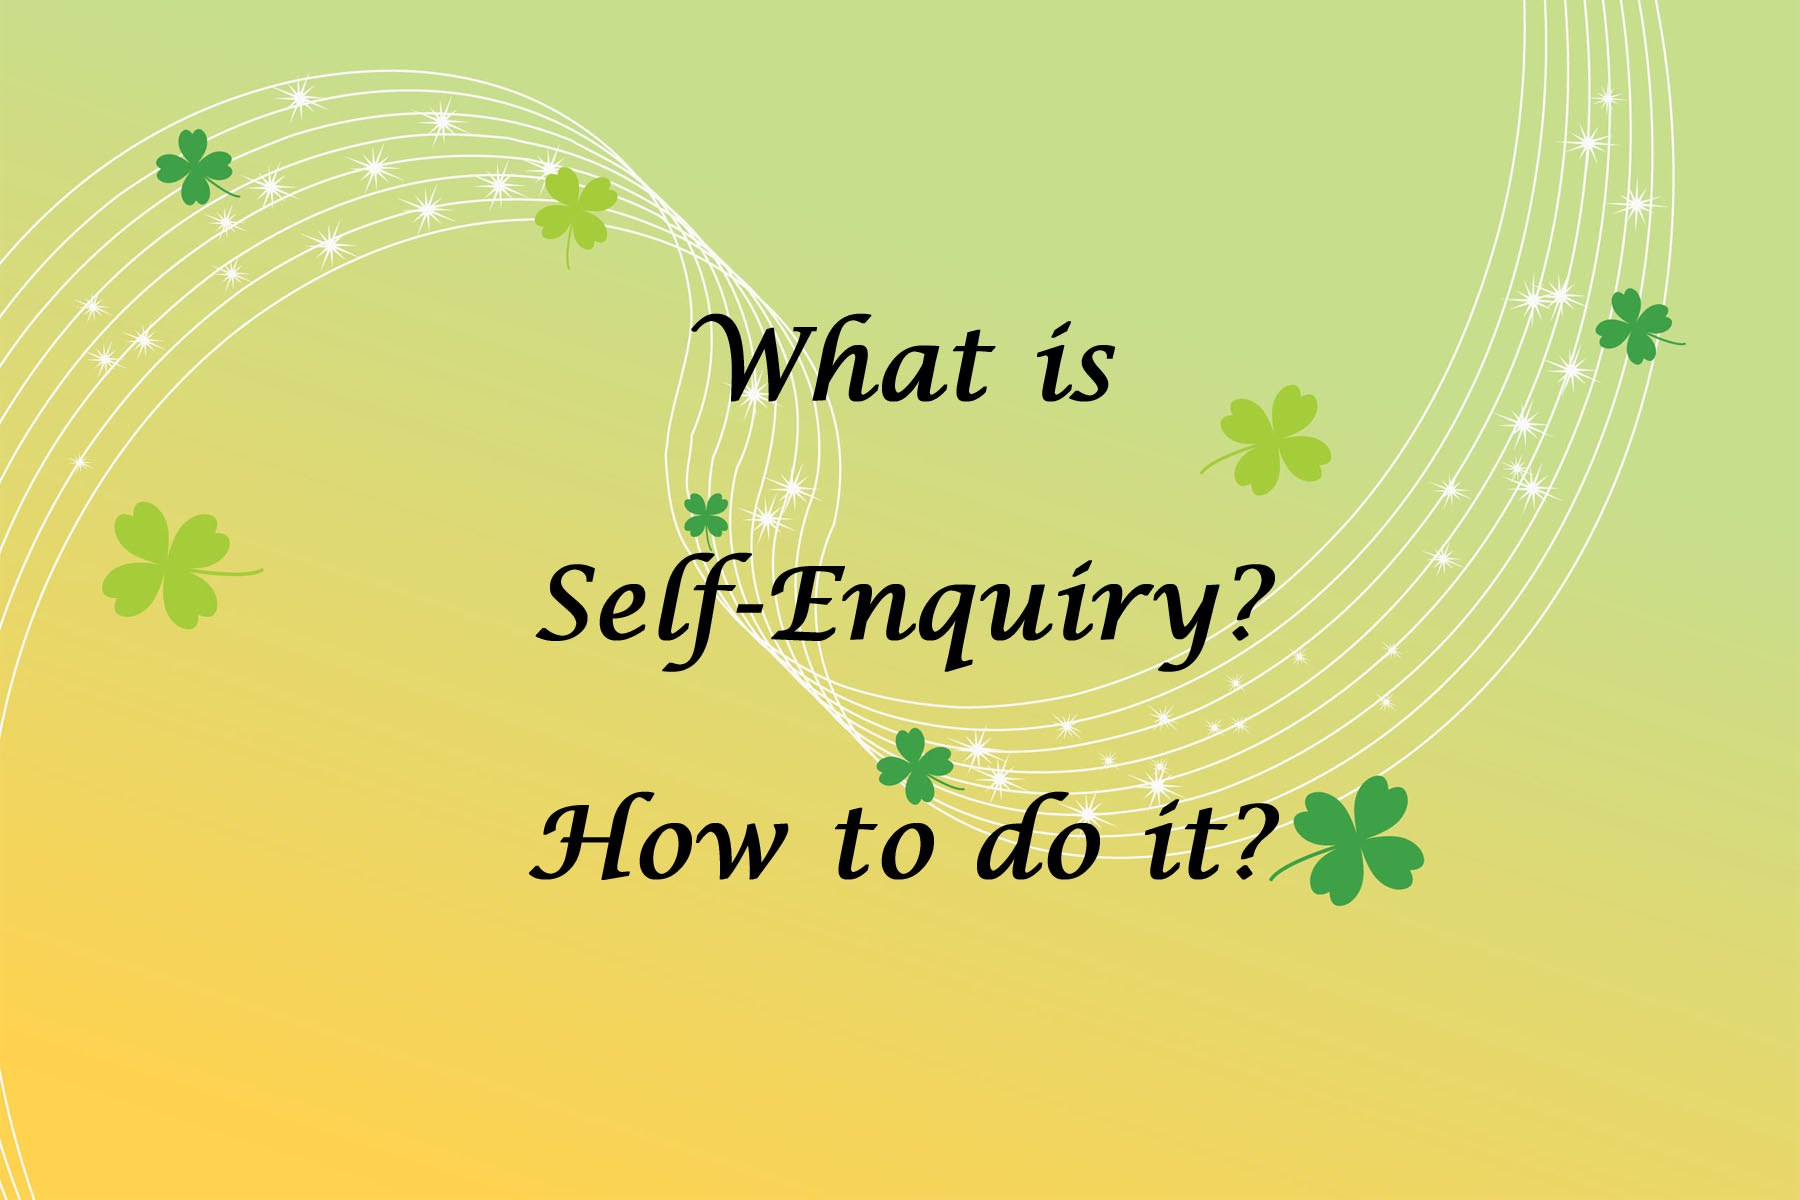 What is Self-Enquiry? How to do it? (2)